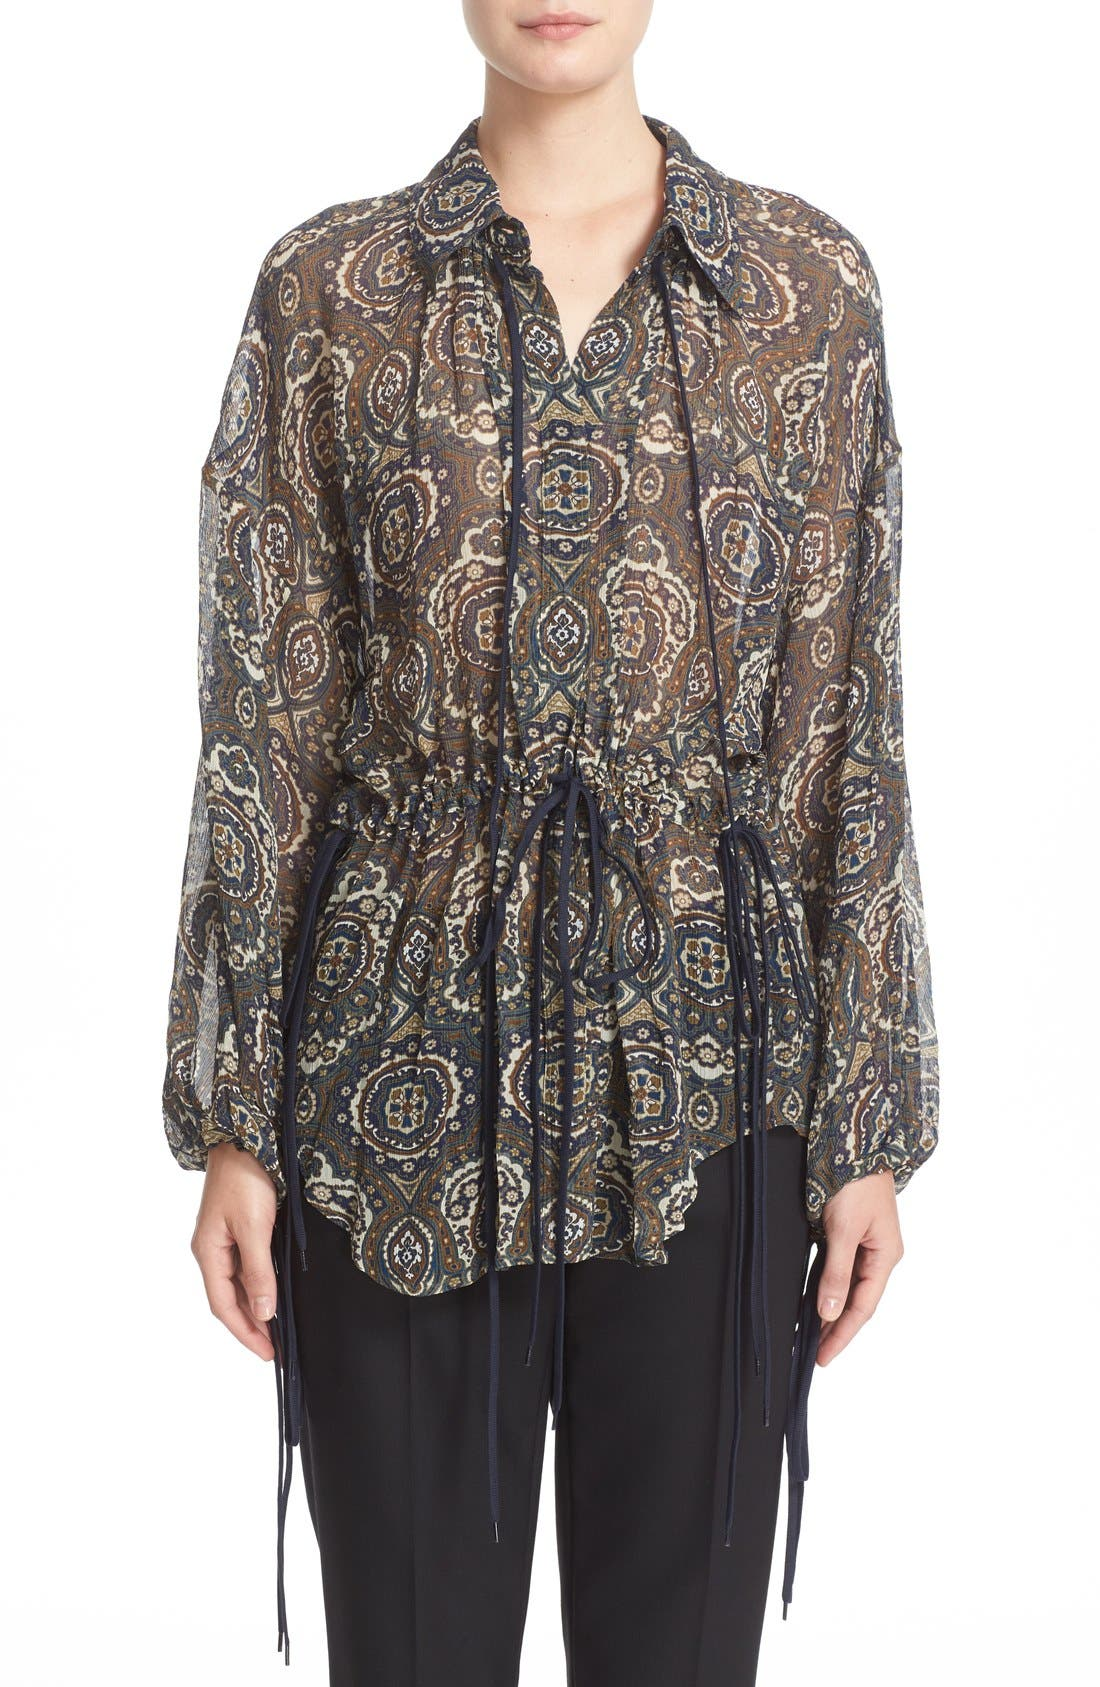 Main Image - Chloé Medallion Print Silk Crepon Blouse